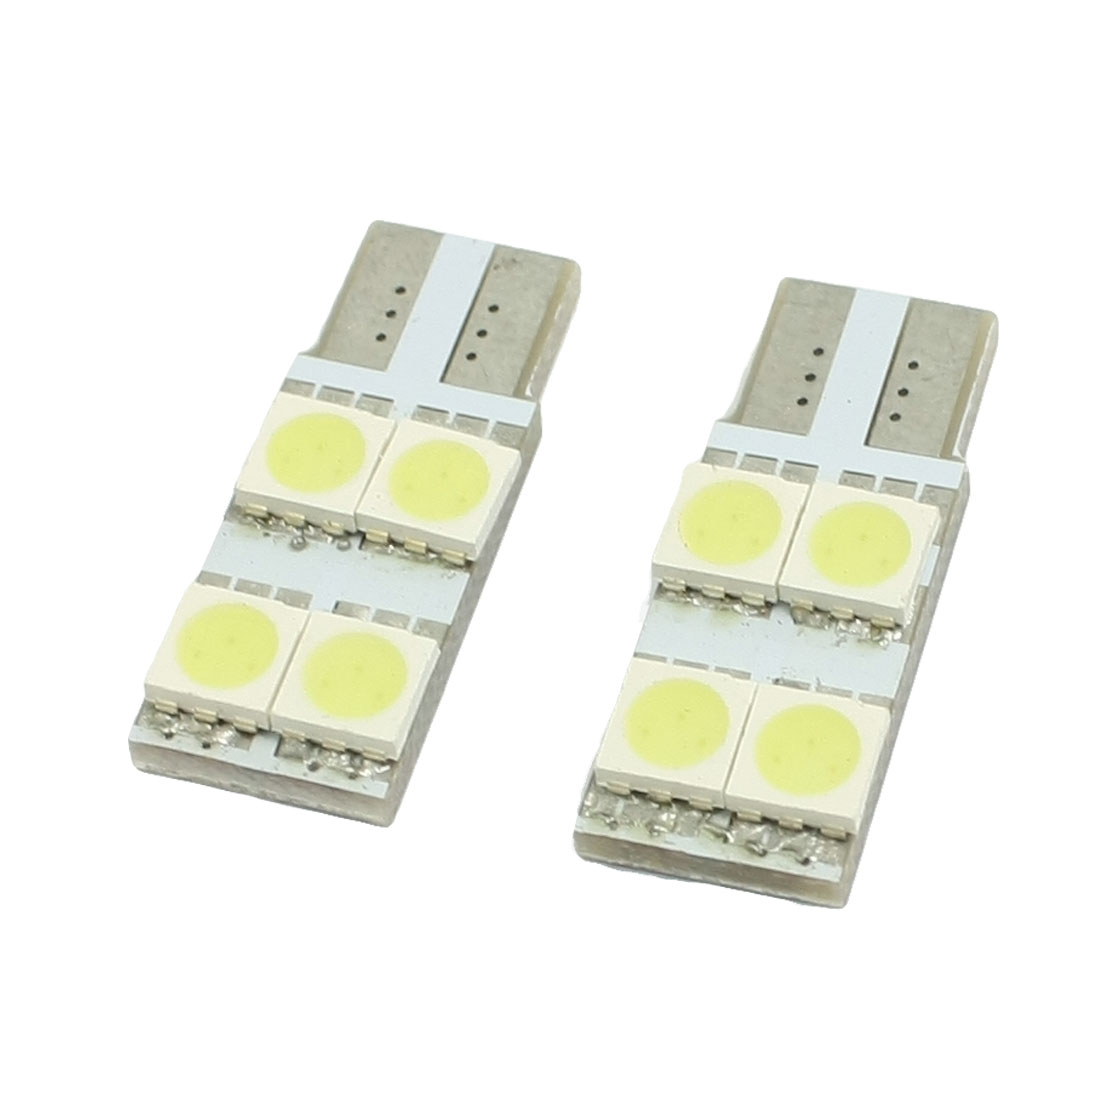 2 Pcs T10 W5W 194 168 Car White Canbus No Error 5050 SMD 4 LED Light Bulb Lamp